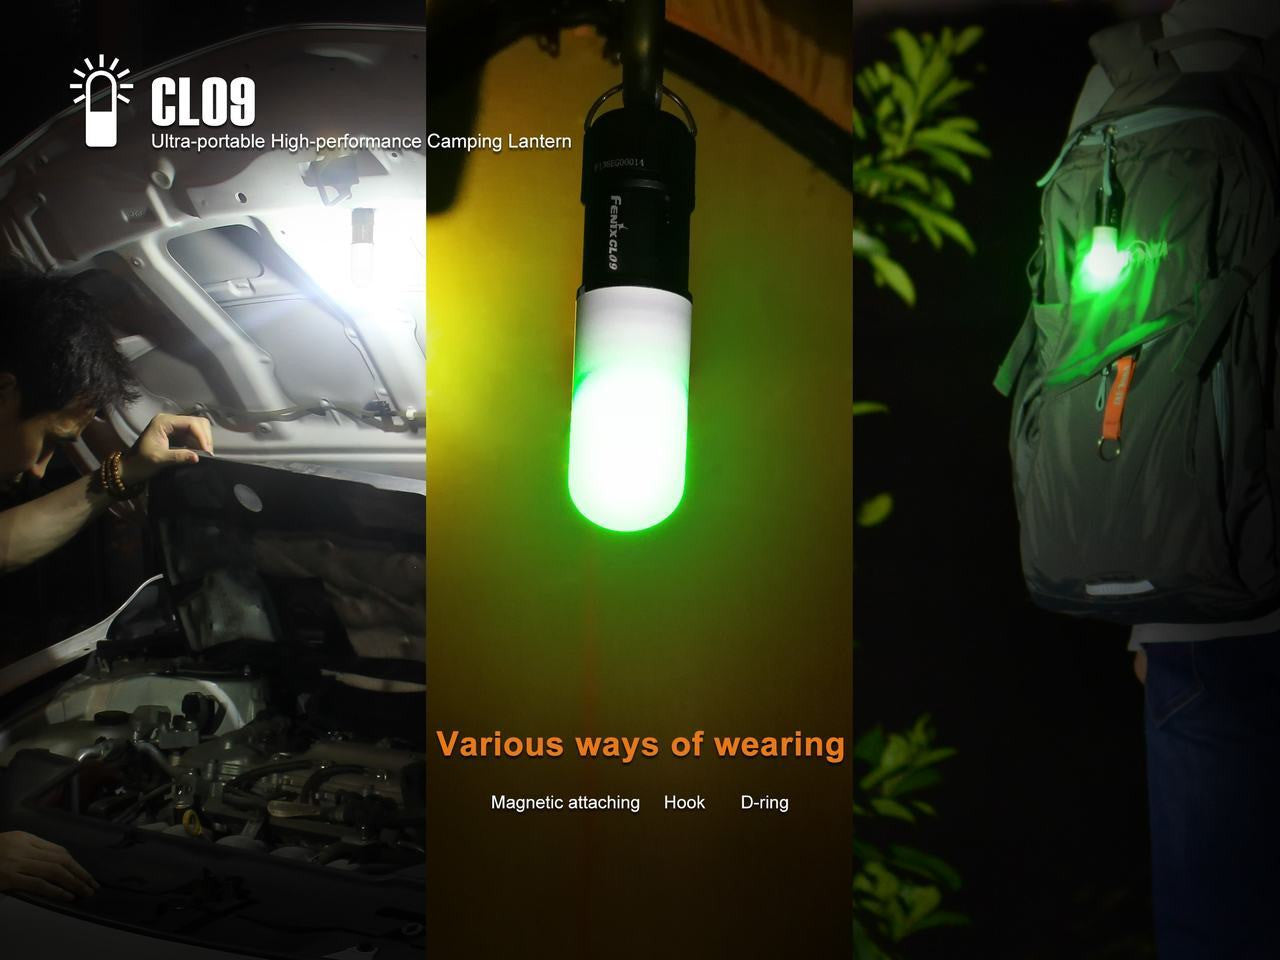 Fenix CL09 200 Lumen Camping Lantern with Magnetic Base, in India